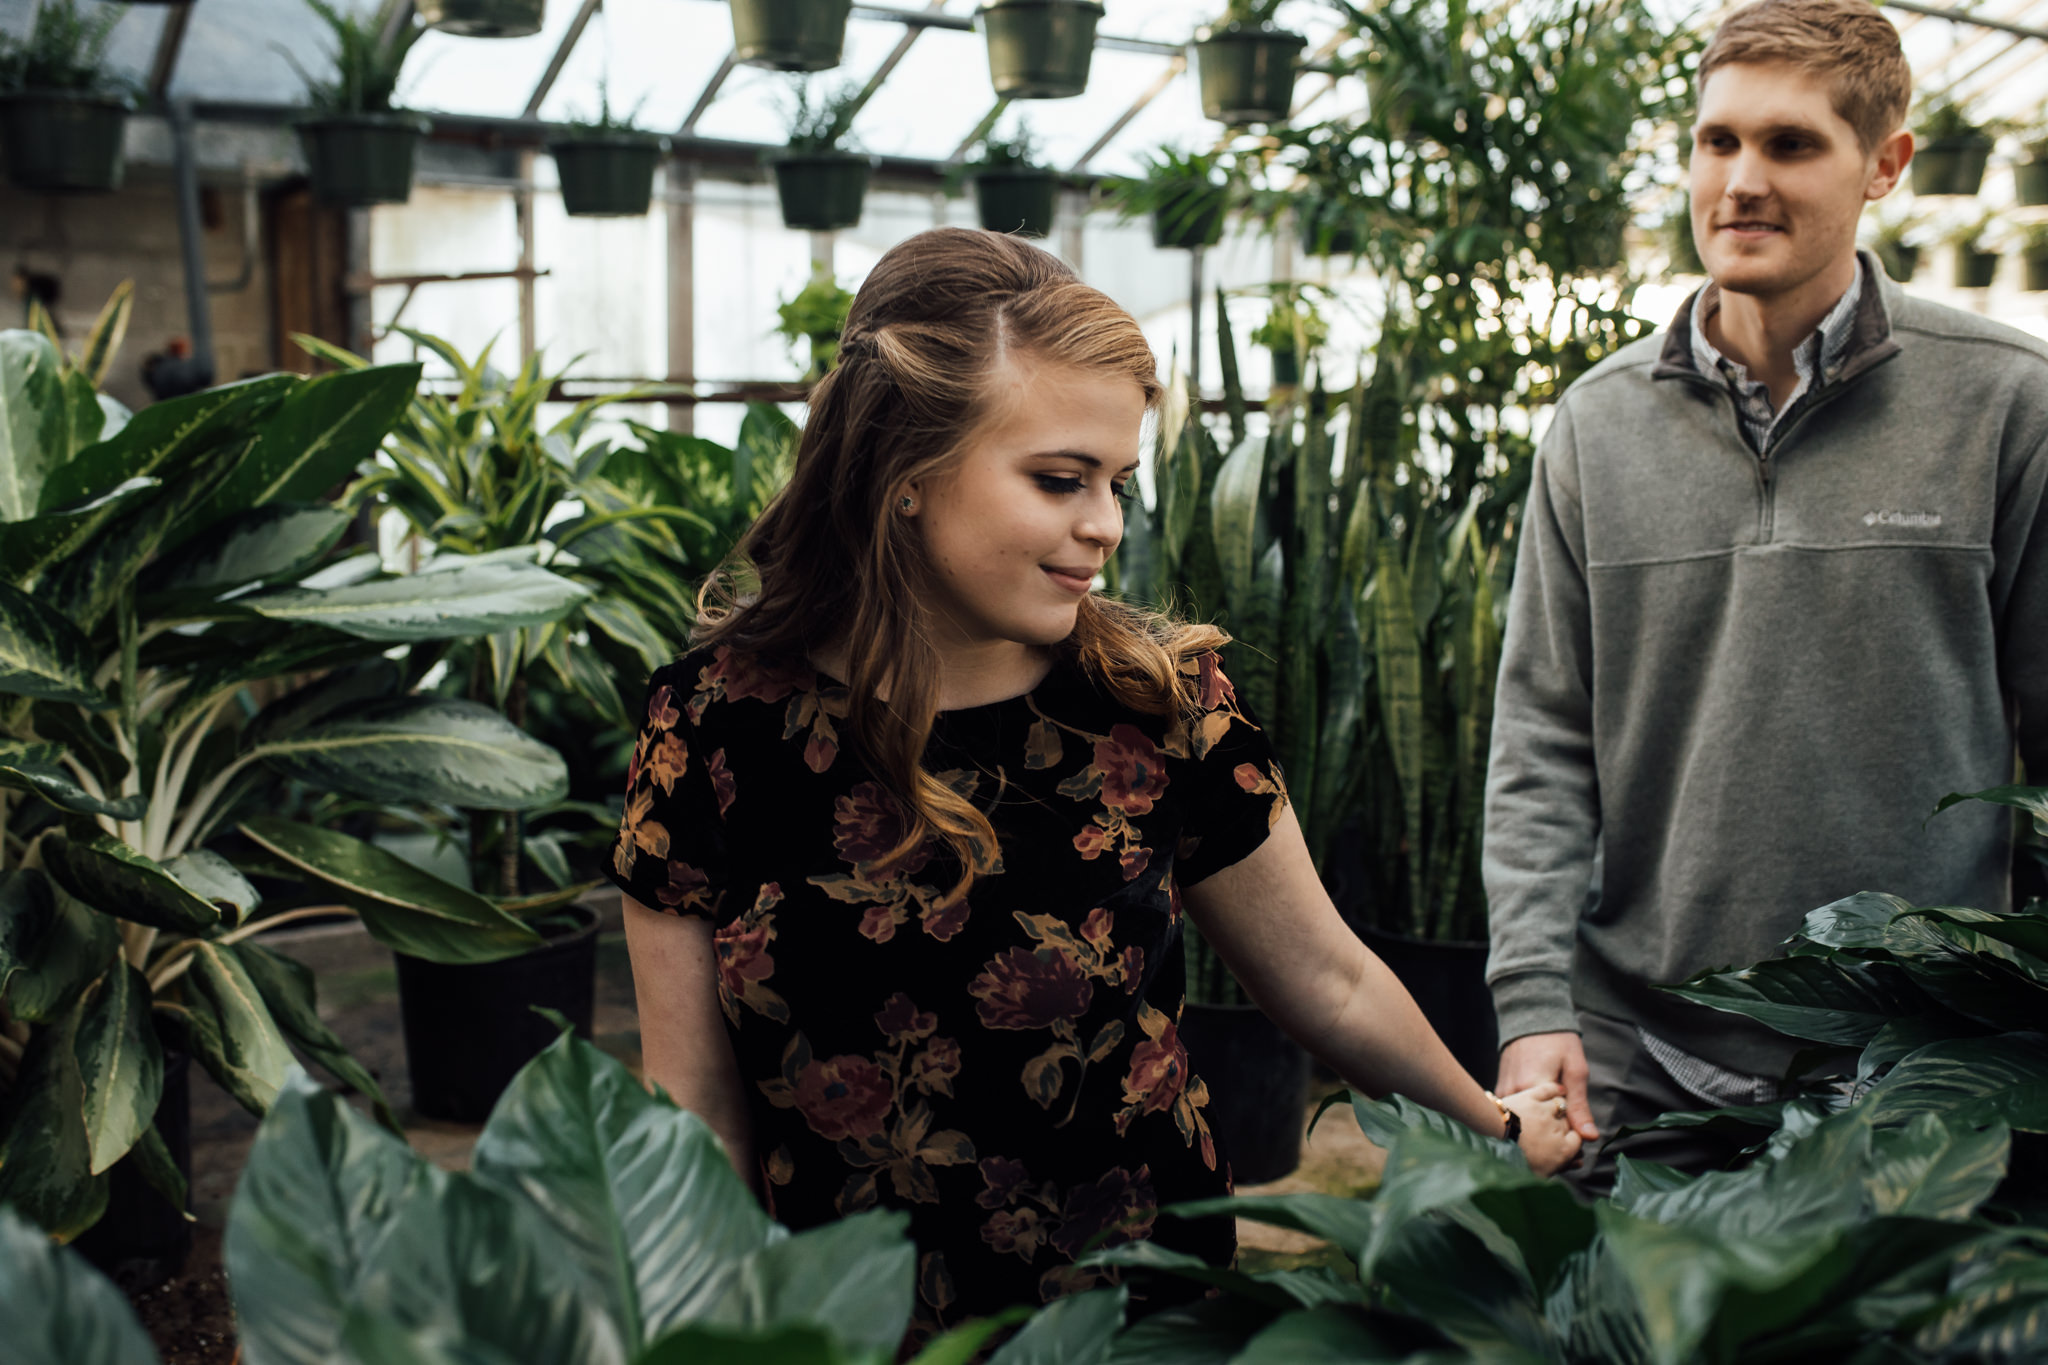 memphis-wedding-photographer-greenhouse-engagement-pictures-cassie-cook-photography-3.jpg